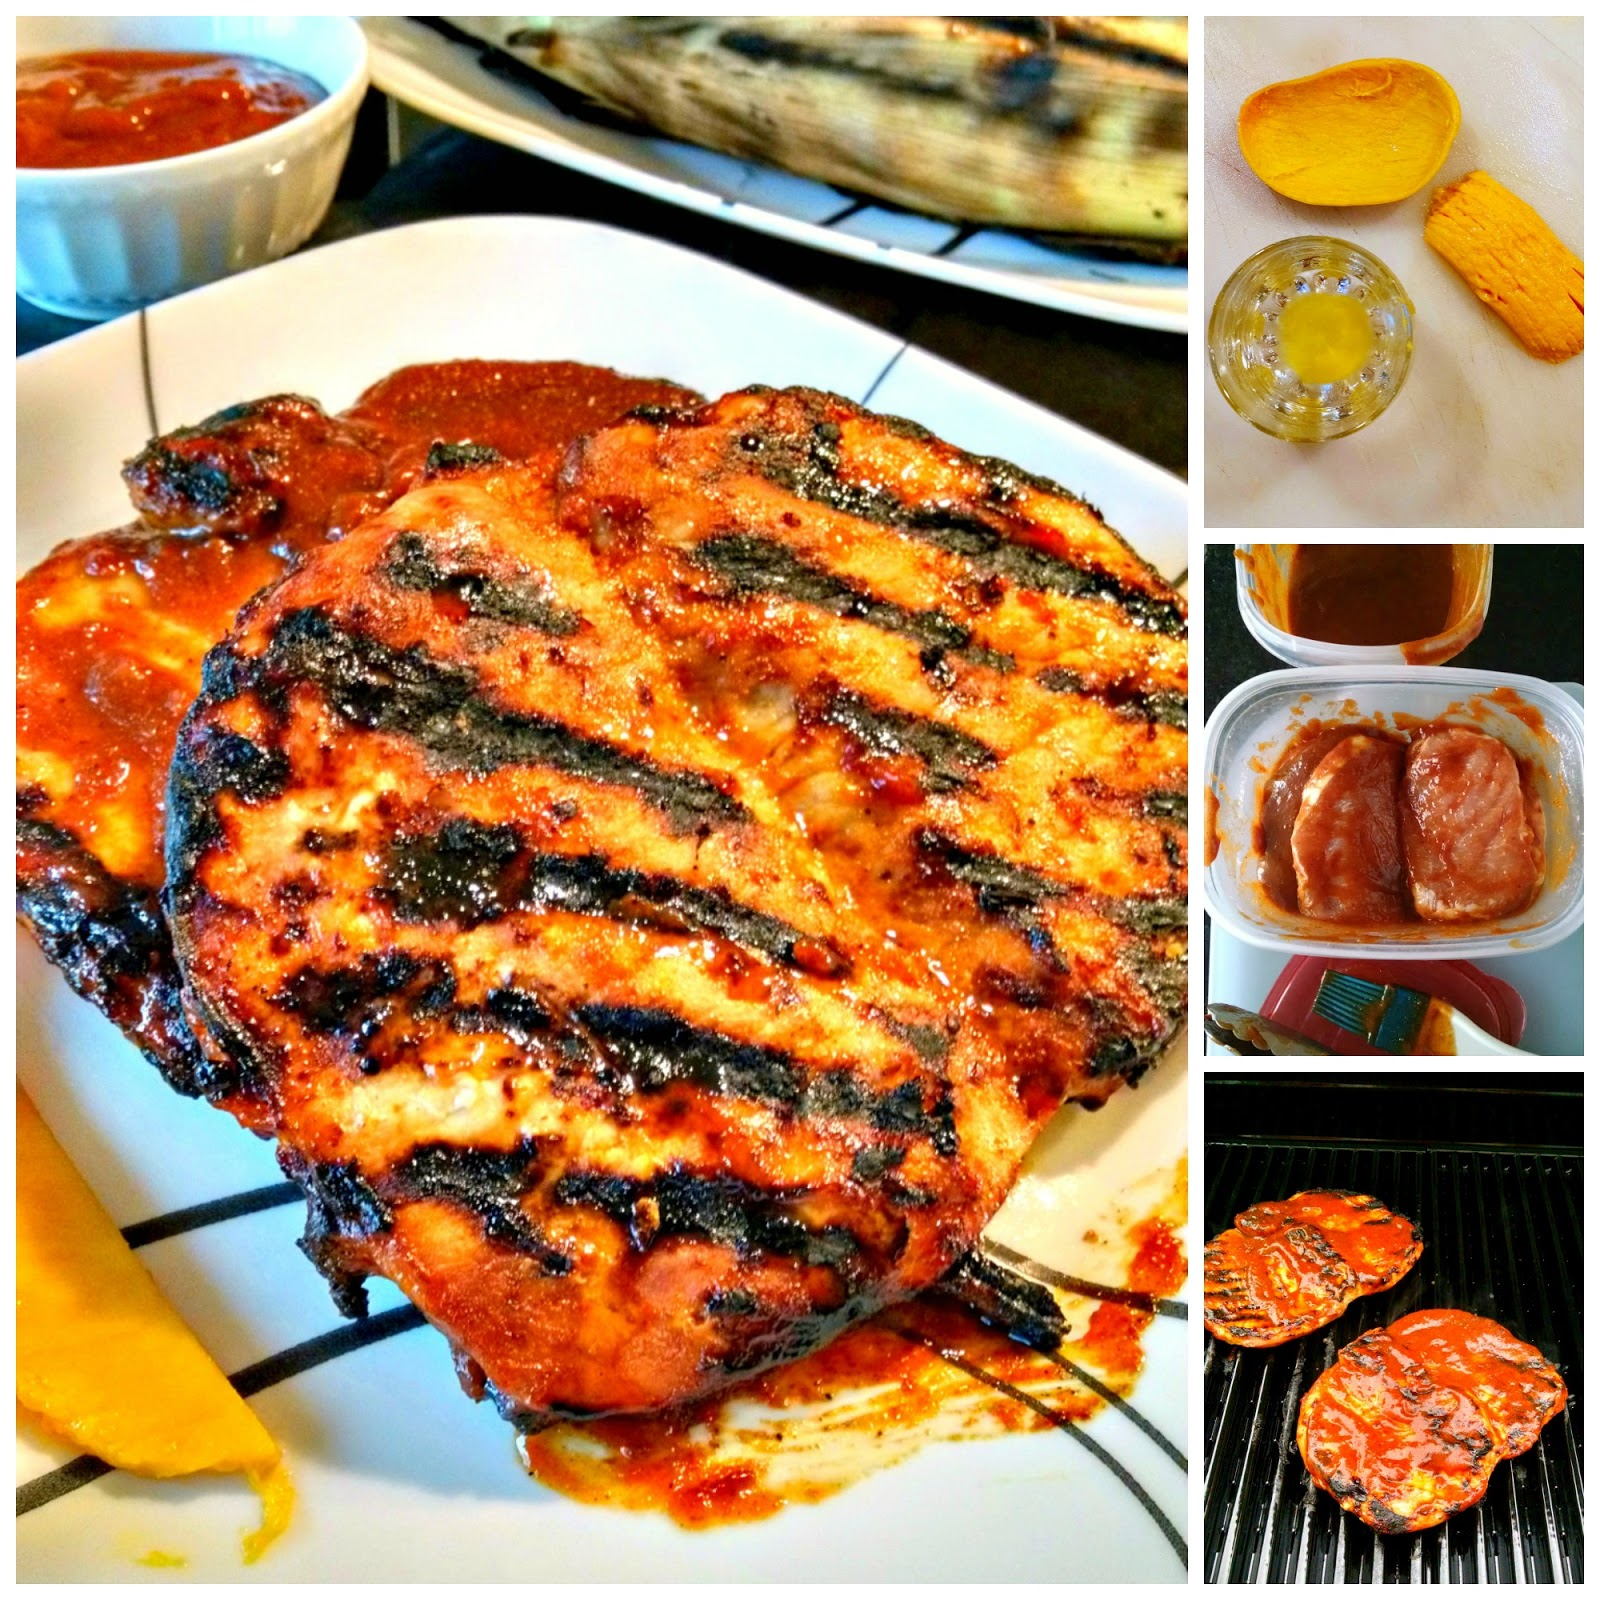 Exotically sweet mango is the basis for this simply tasty sauce. Mango Barbecued Pork Chops takes you to the tropics right from your kitchen. This recipe makes plenty of sauce for at least 2 meals work of chops.